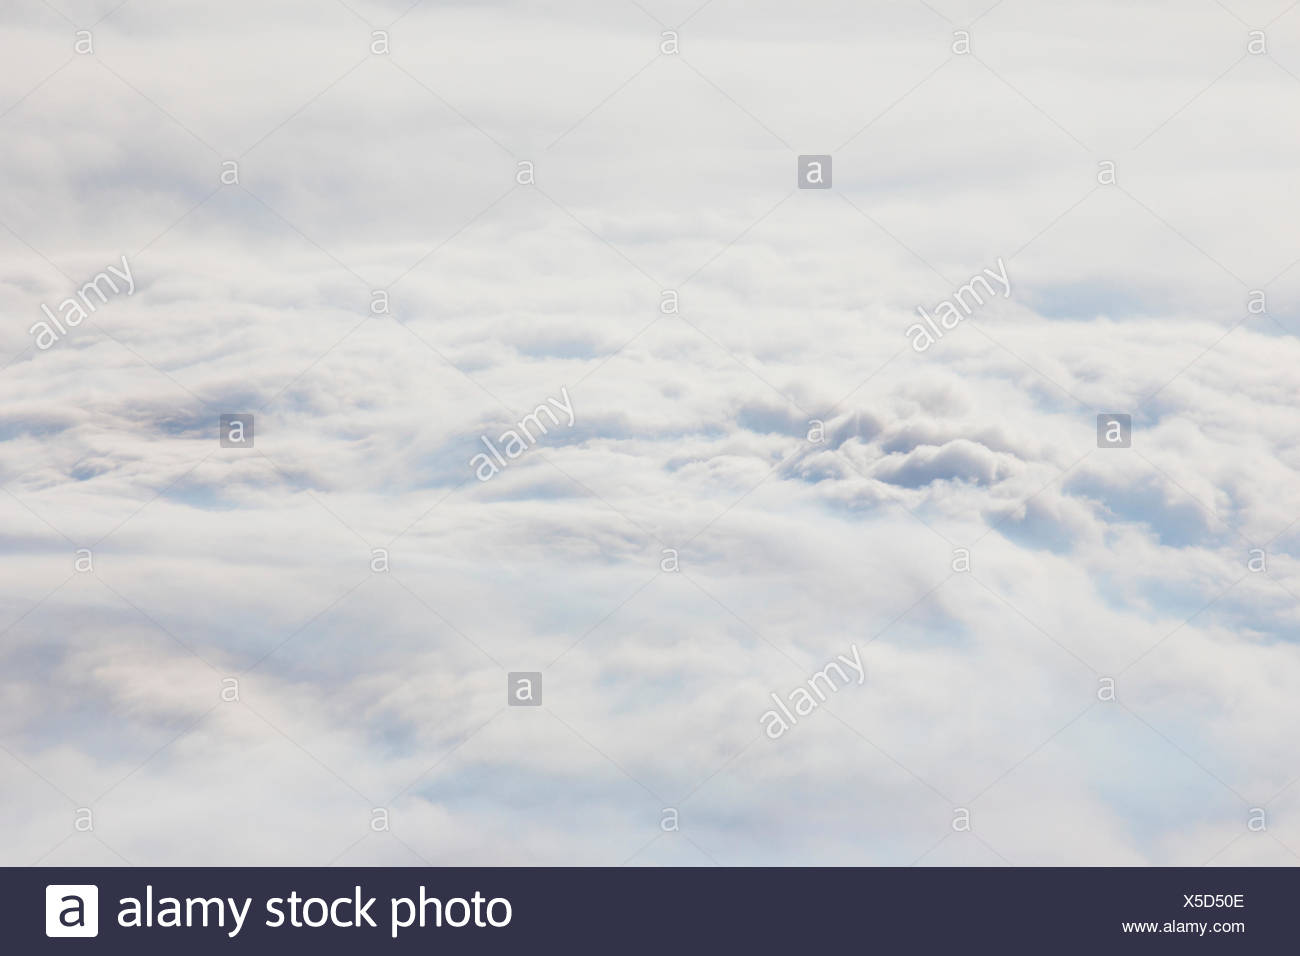 Thing, fog, sea of fog, Switzerland, sun, sunshine, weather, winter, weather, cloud, cloud thing, cloud sea, sunny, knows - Stock Image